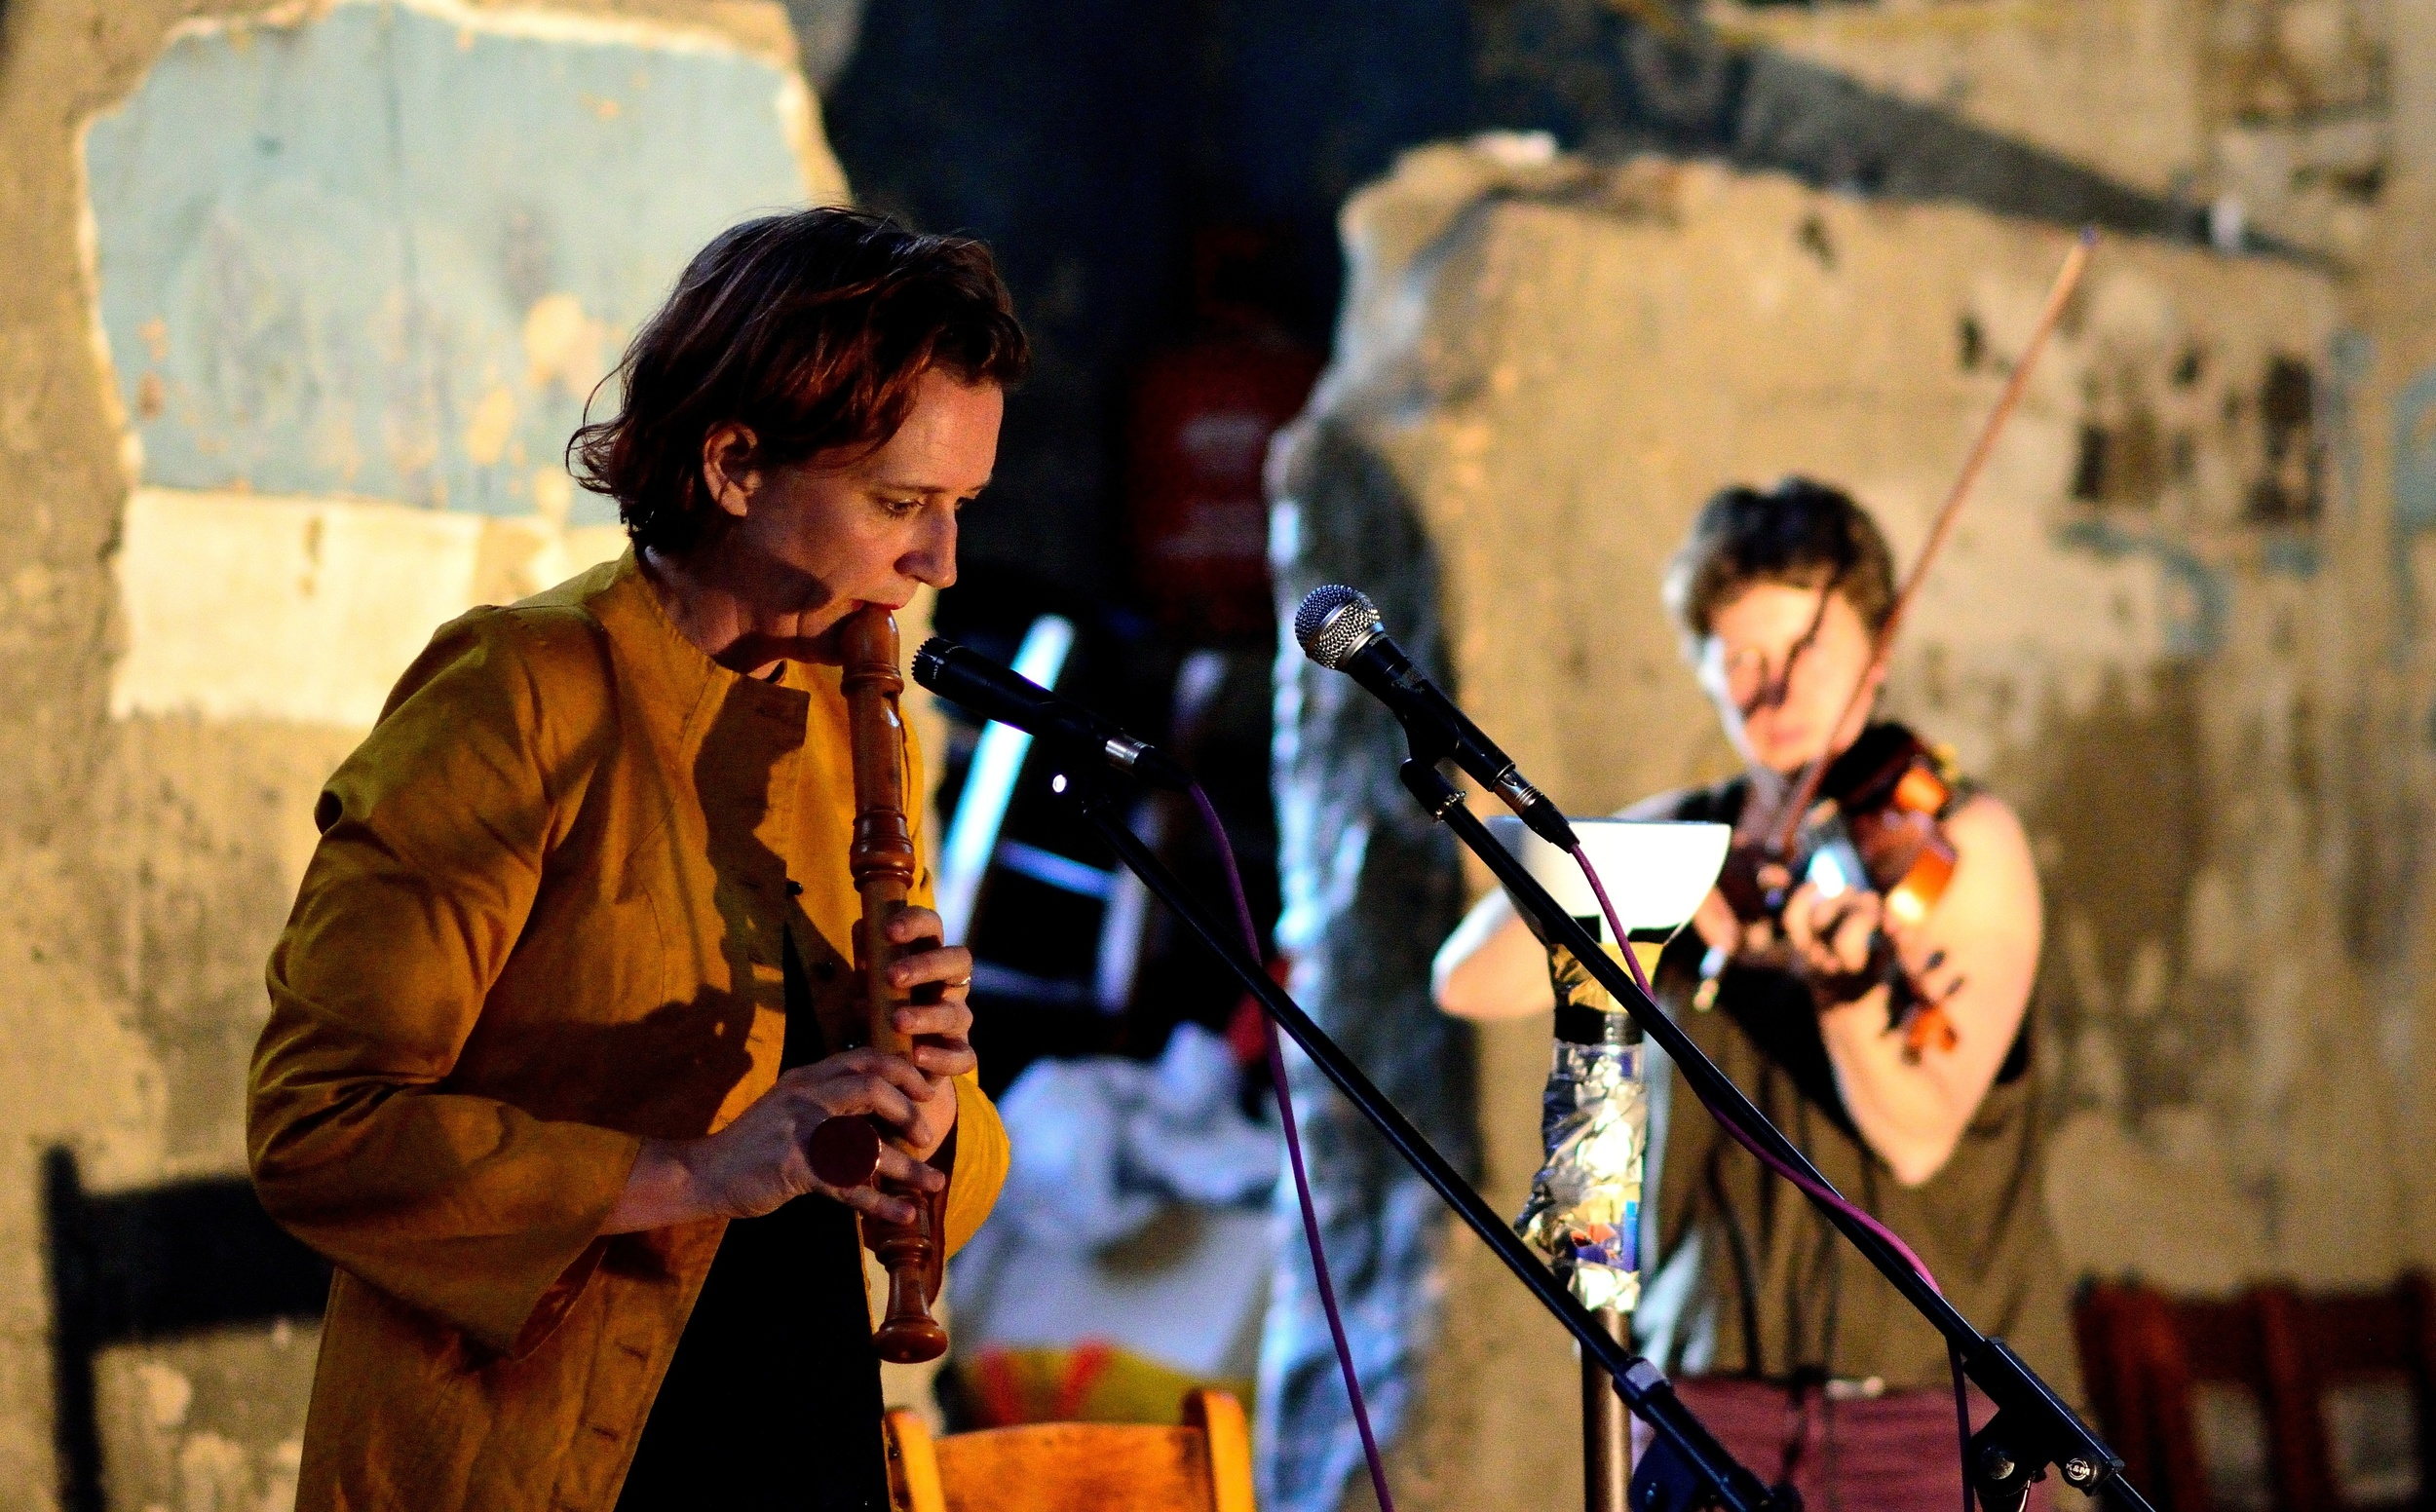 Tremulous, Asylum Chapel - An evening of experimental performance hosted by Buckner Building